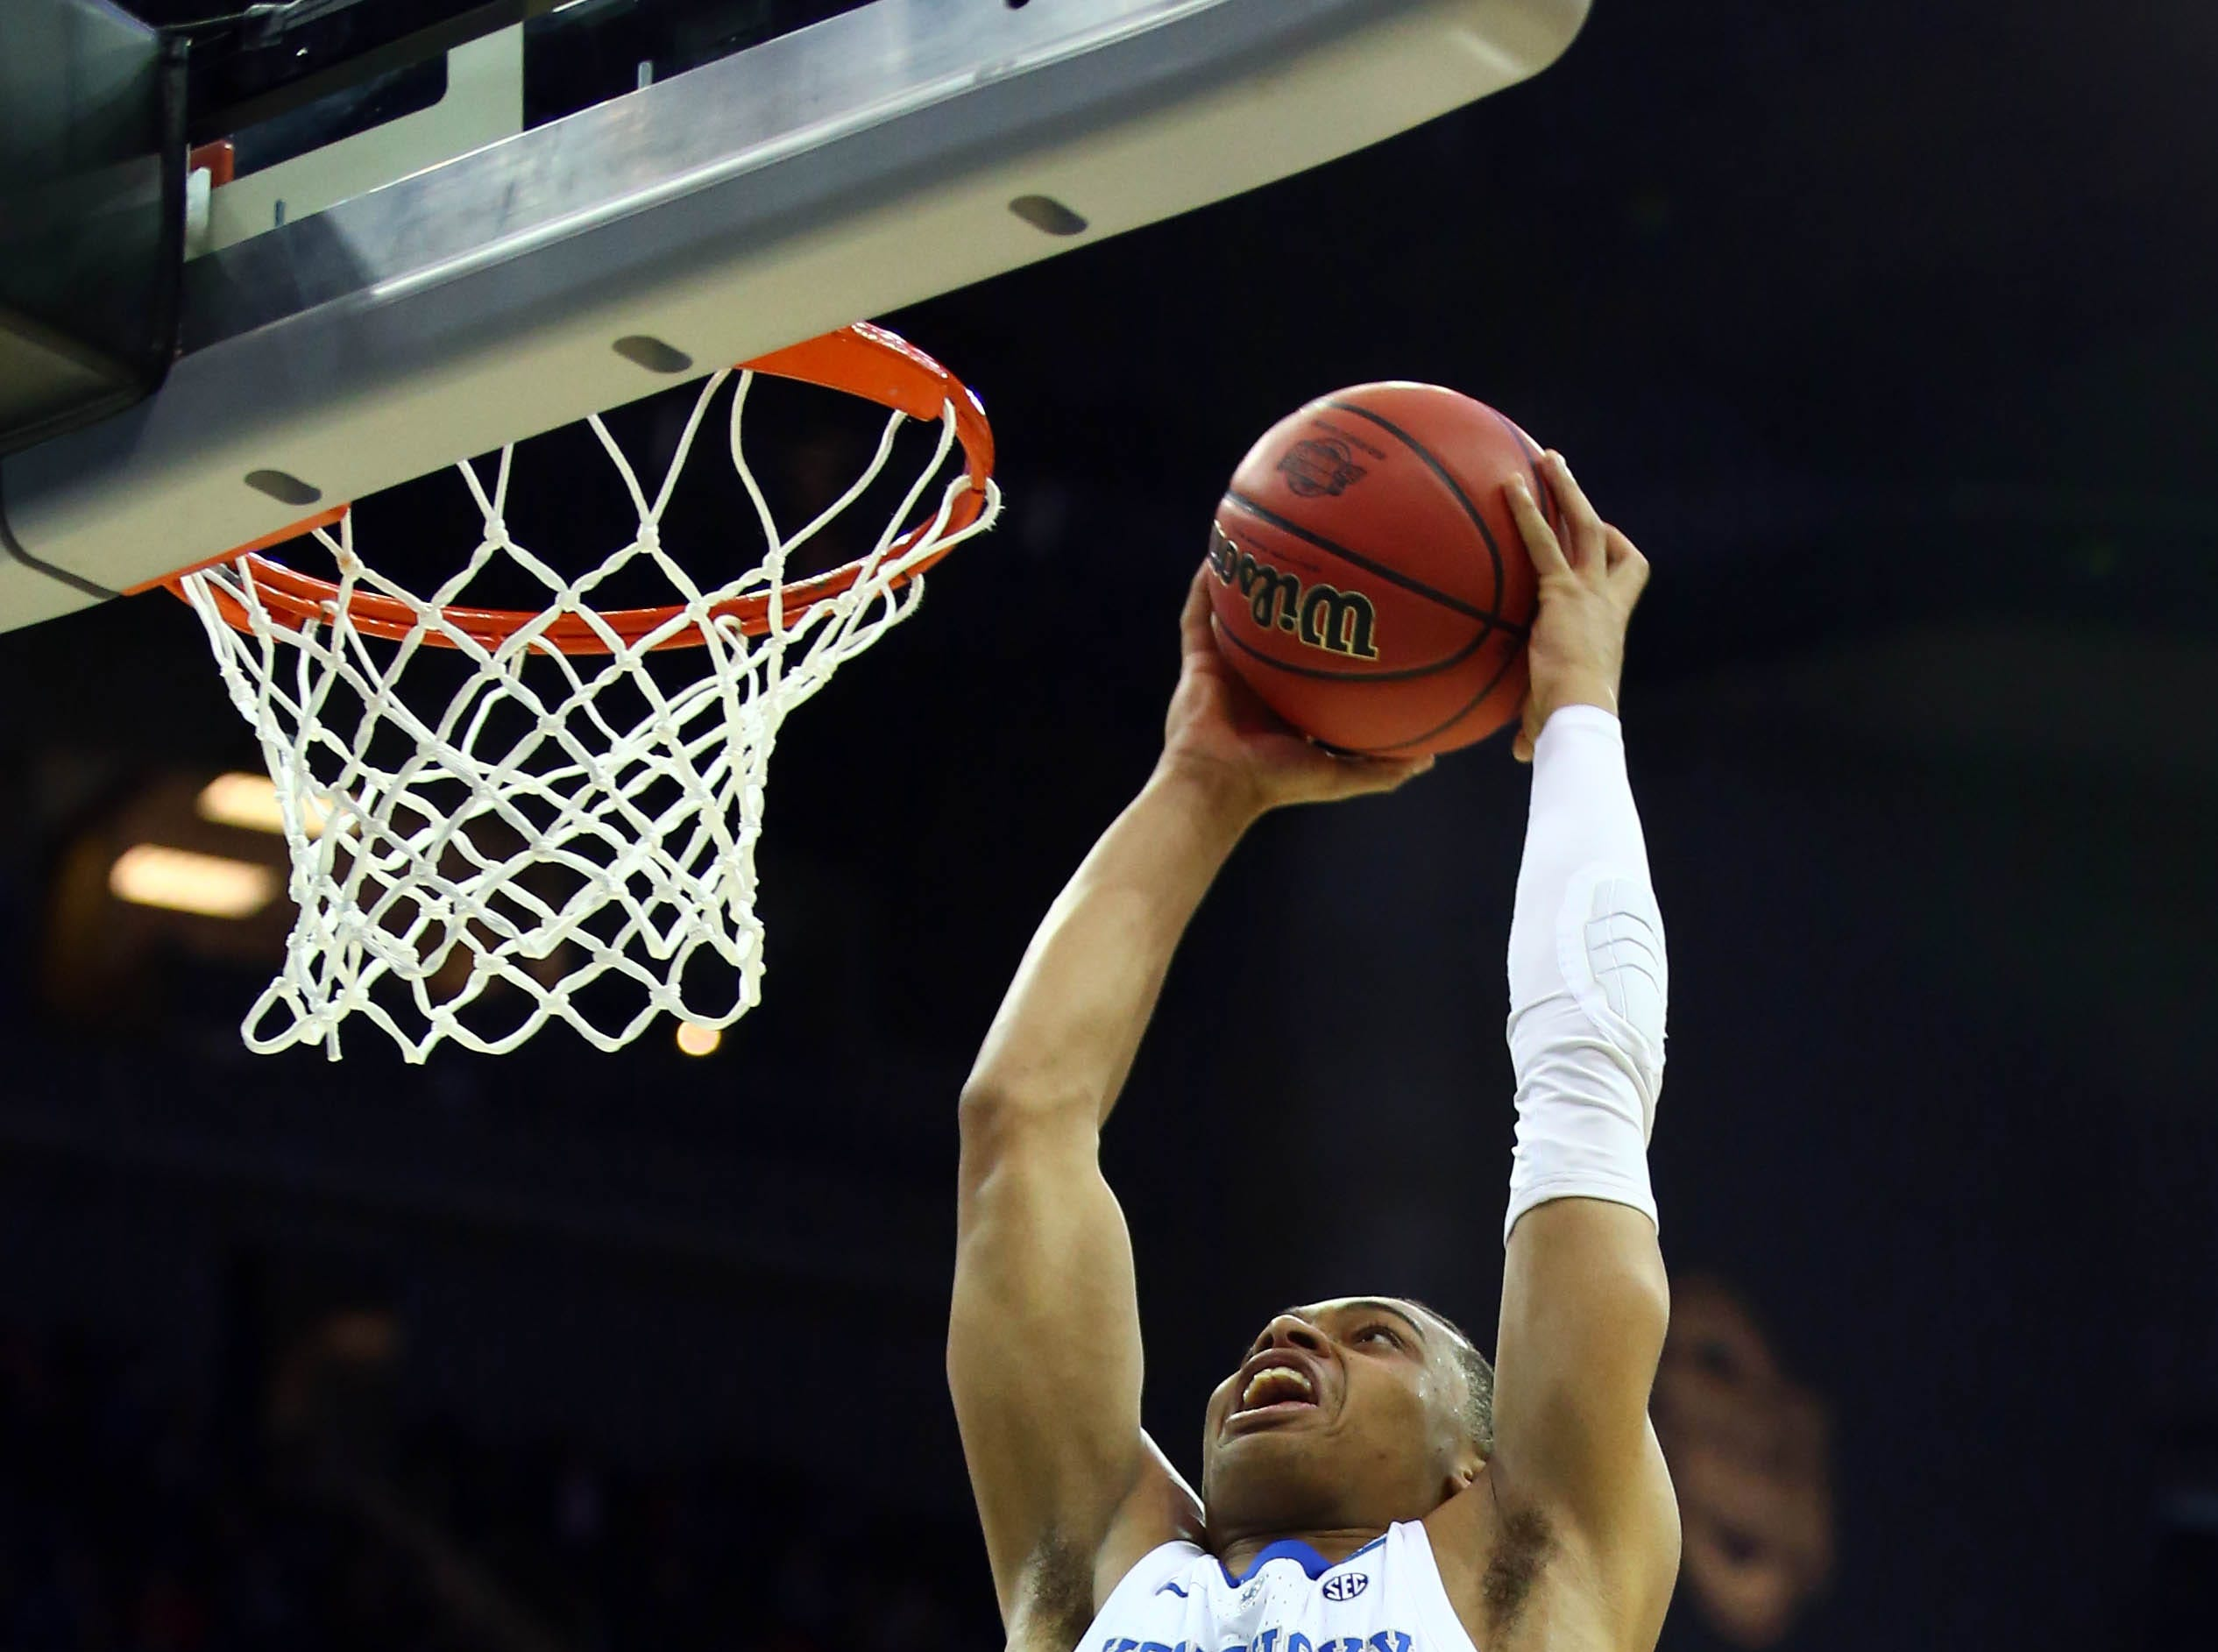 Mar 31, 2019; Kansas City, MO, United States; Kentucky Wildcats guard Keldon Johnson (3) dunks the ball against the Auburn Tigers during the second half in the championship game of the midwest regional of the 2019 NCAA Tournament at Sprint Center. Mandatory Credit: Jay Biggerstaff-USA TODAY Sports